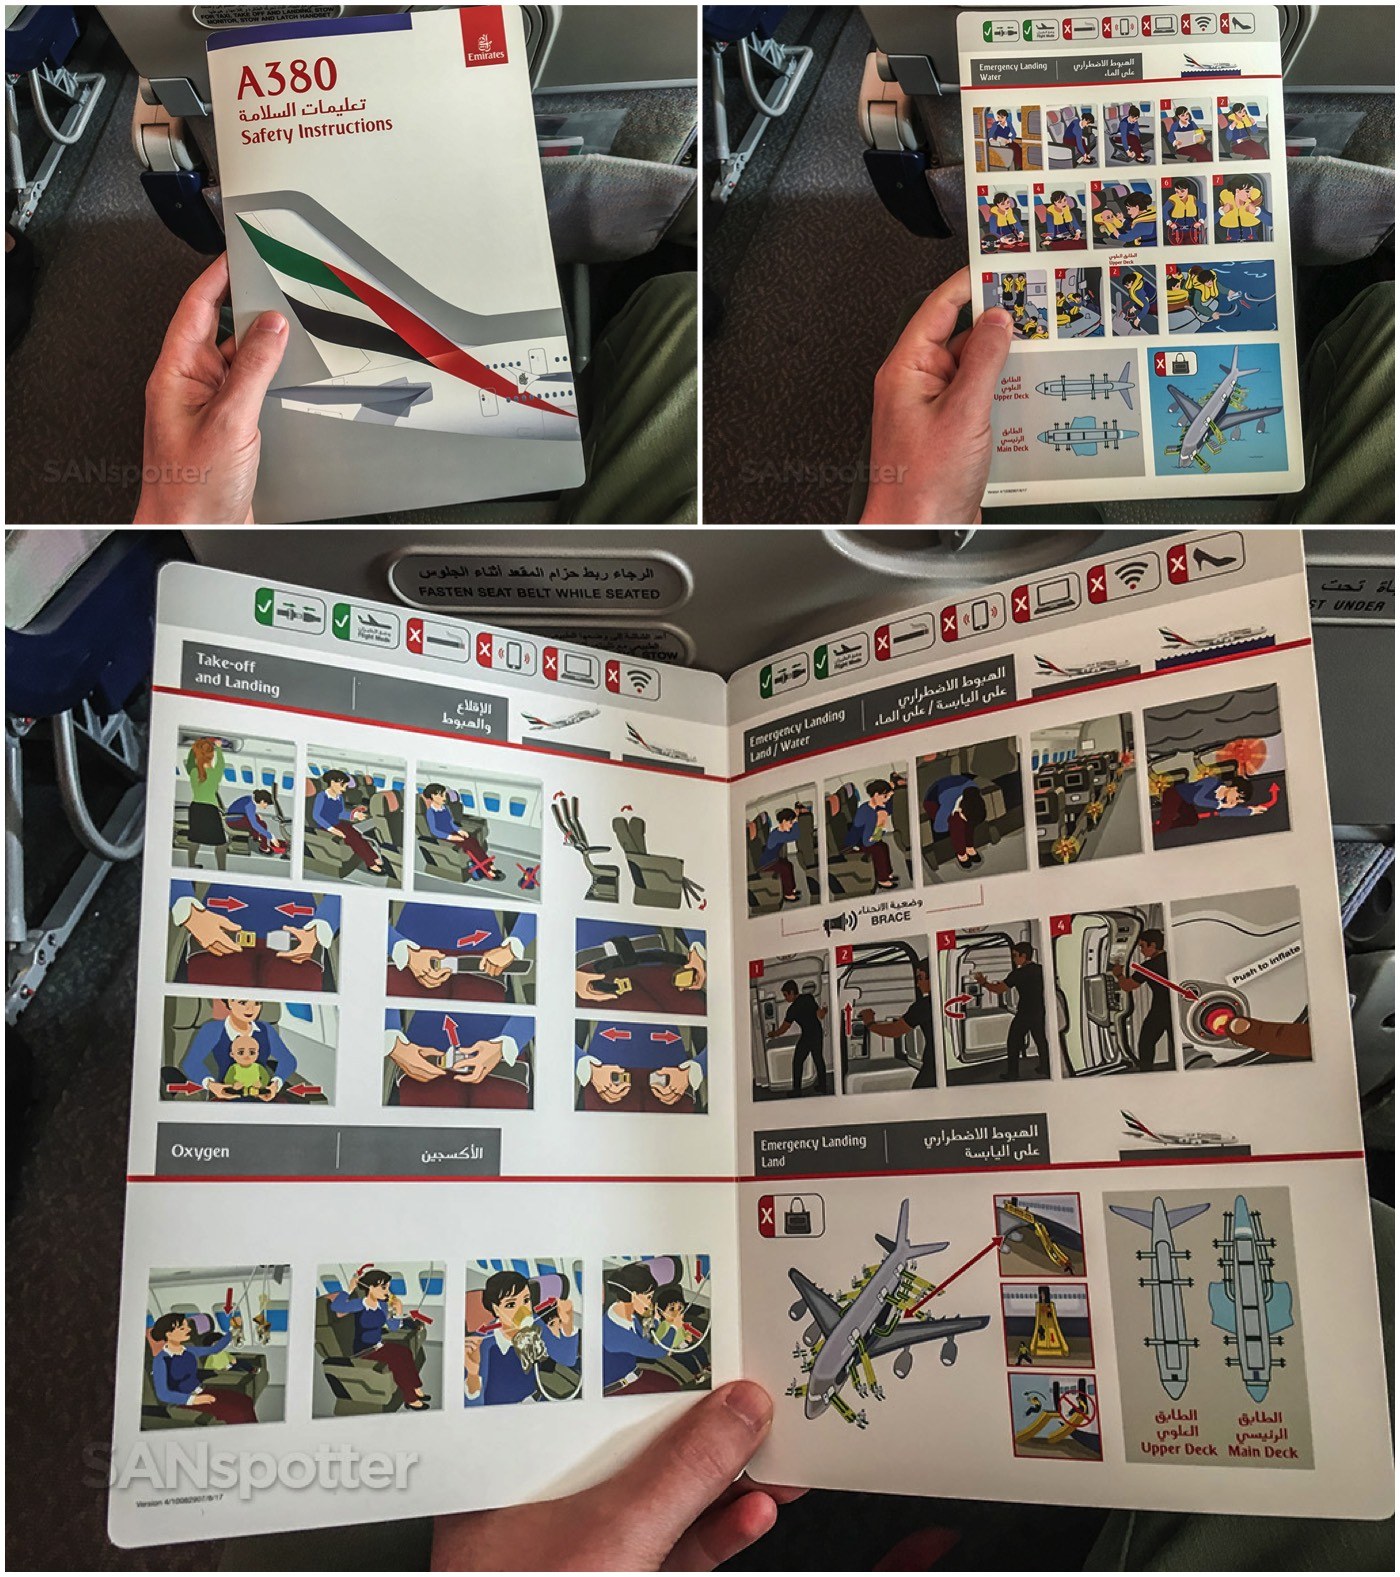 Emirates A380 safety card